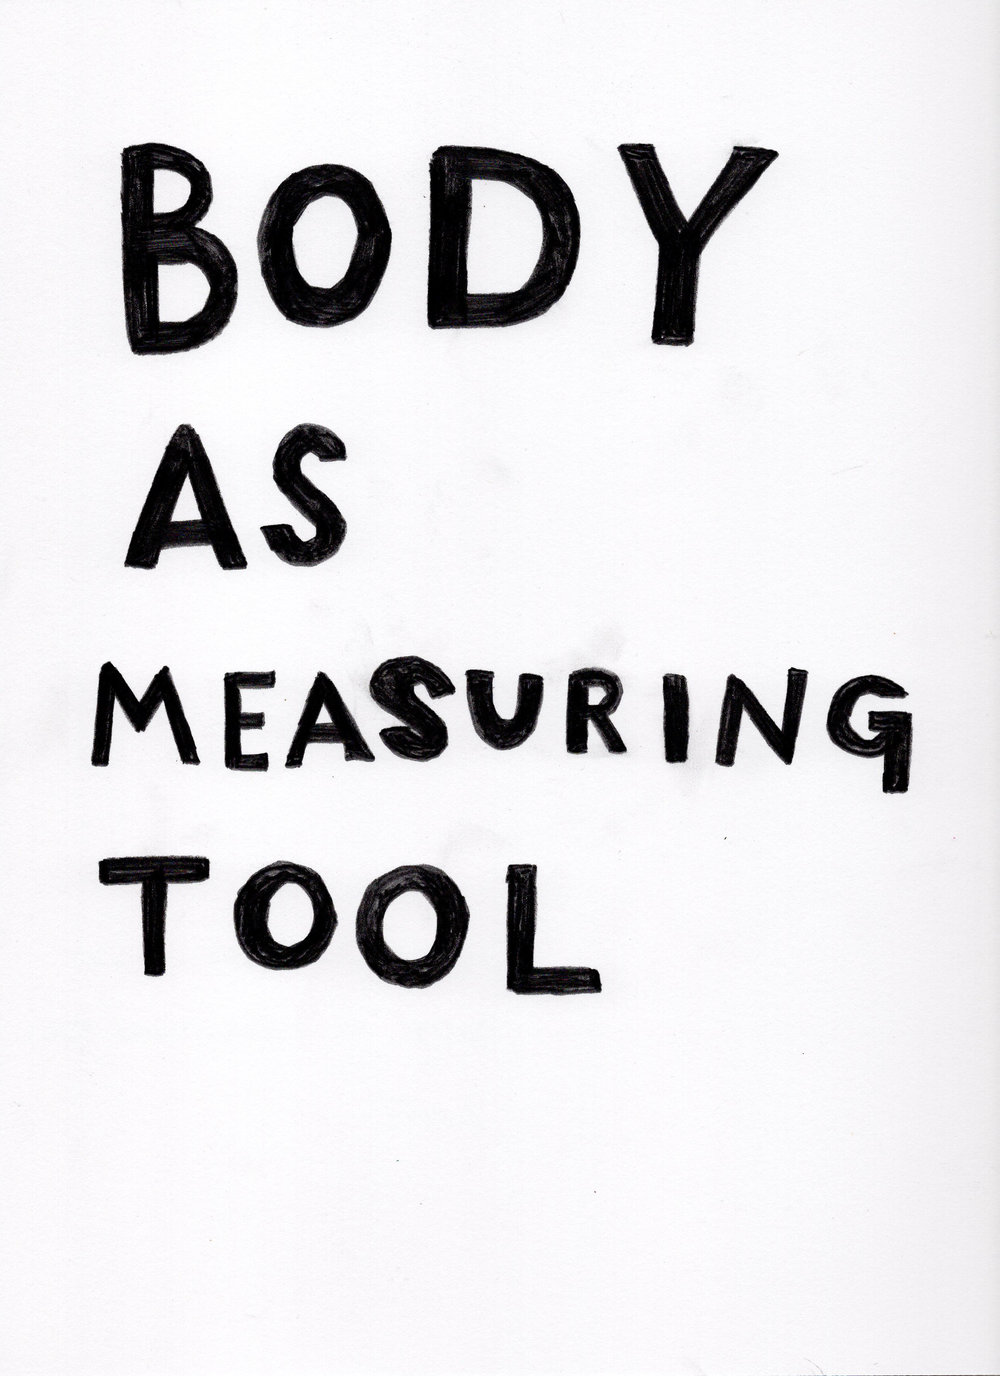 BodyAsMeasuringTool_2015.jpg